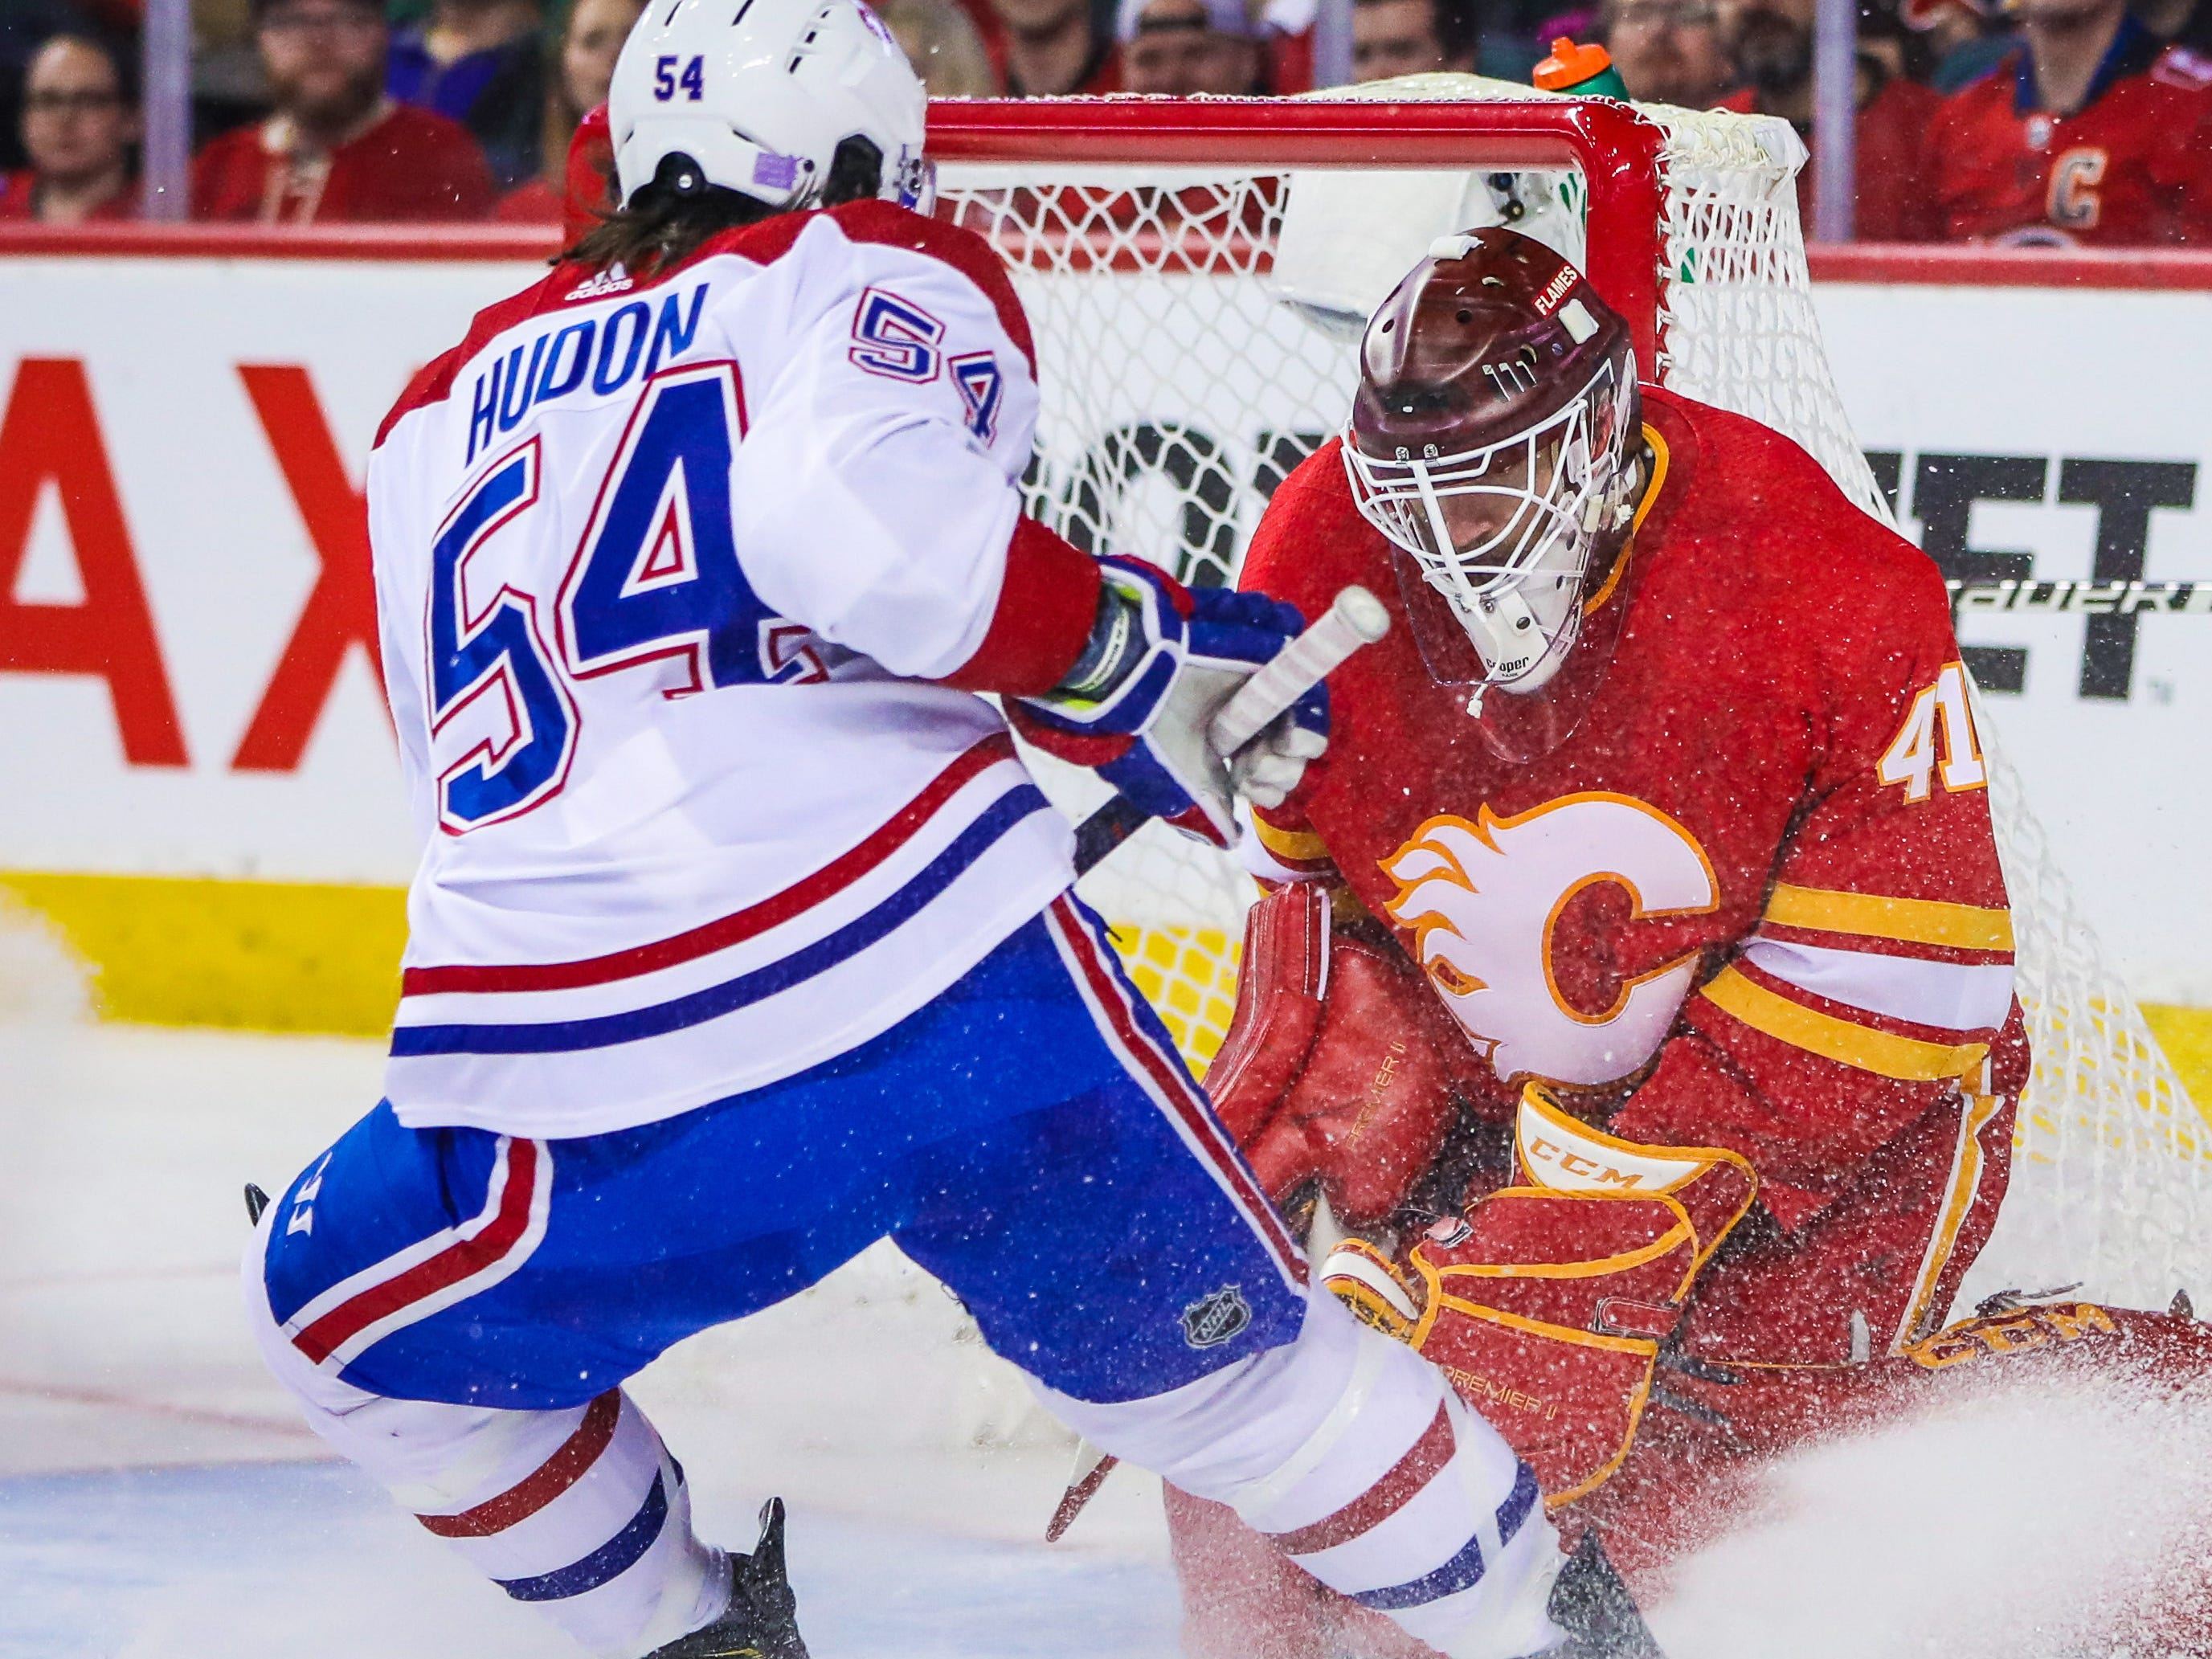 Nov. 15: Calgary Flames goaltender Mike Smith makes a save against the Montreal Canadiens during the second period at Scotiabank Saddledome.